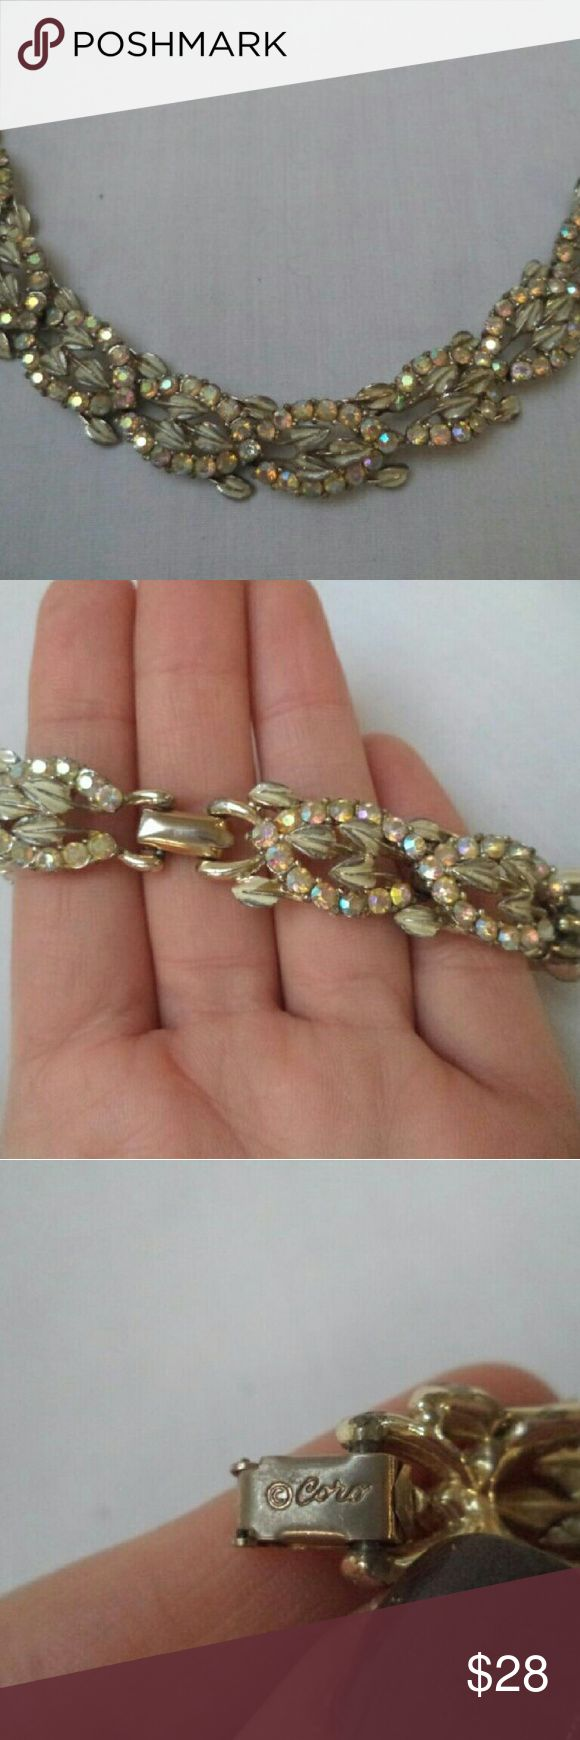 VINTAGE ESTATE GOLD TONE SIGNED CORO RHINESTONE VINTAGE ESTATE GOLD TONE SIGNED CORO RHINESTONE BRACELET!!!  Family heirloom. Only one I have in gold tone.  No trades please Coro Jewelry Bracelets